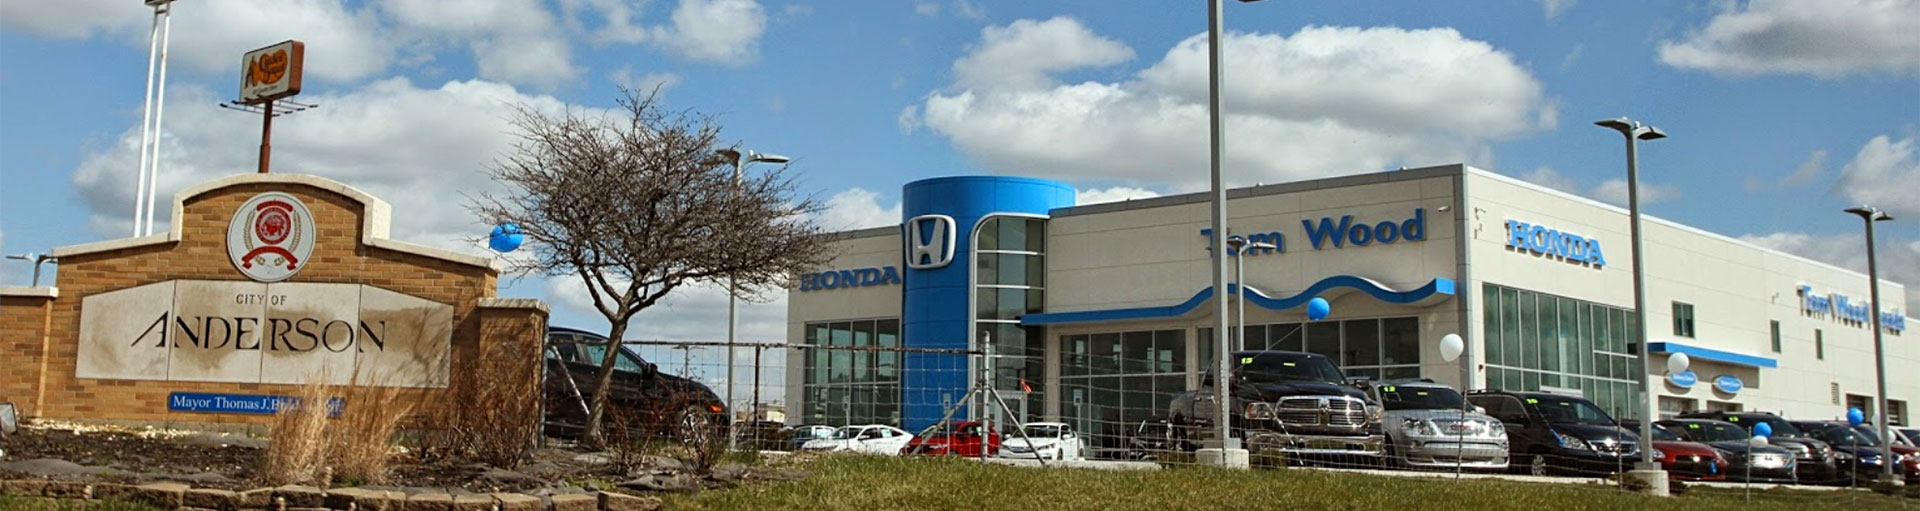 Honda Service Specials Coupons